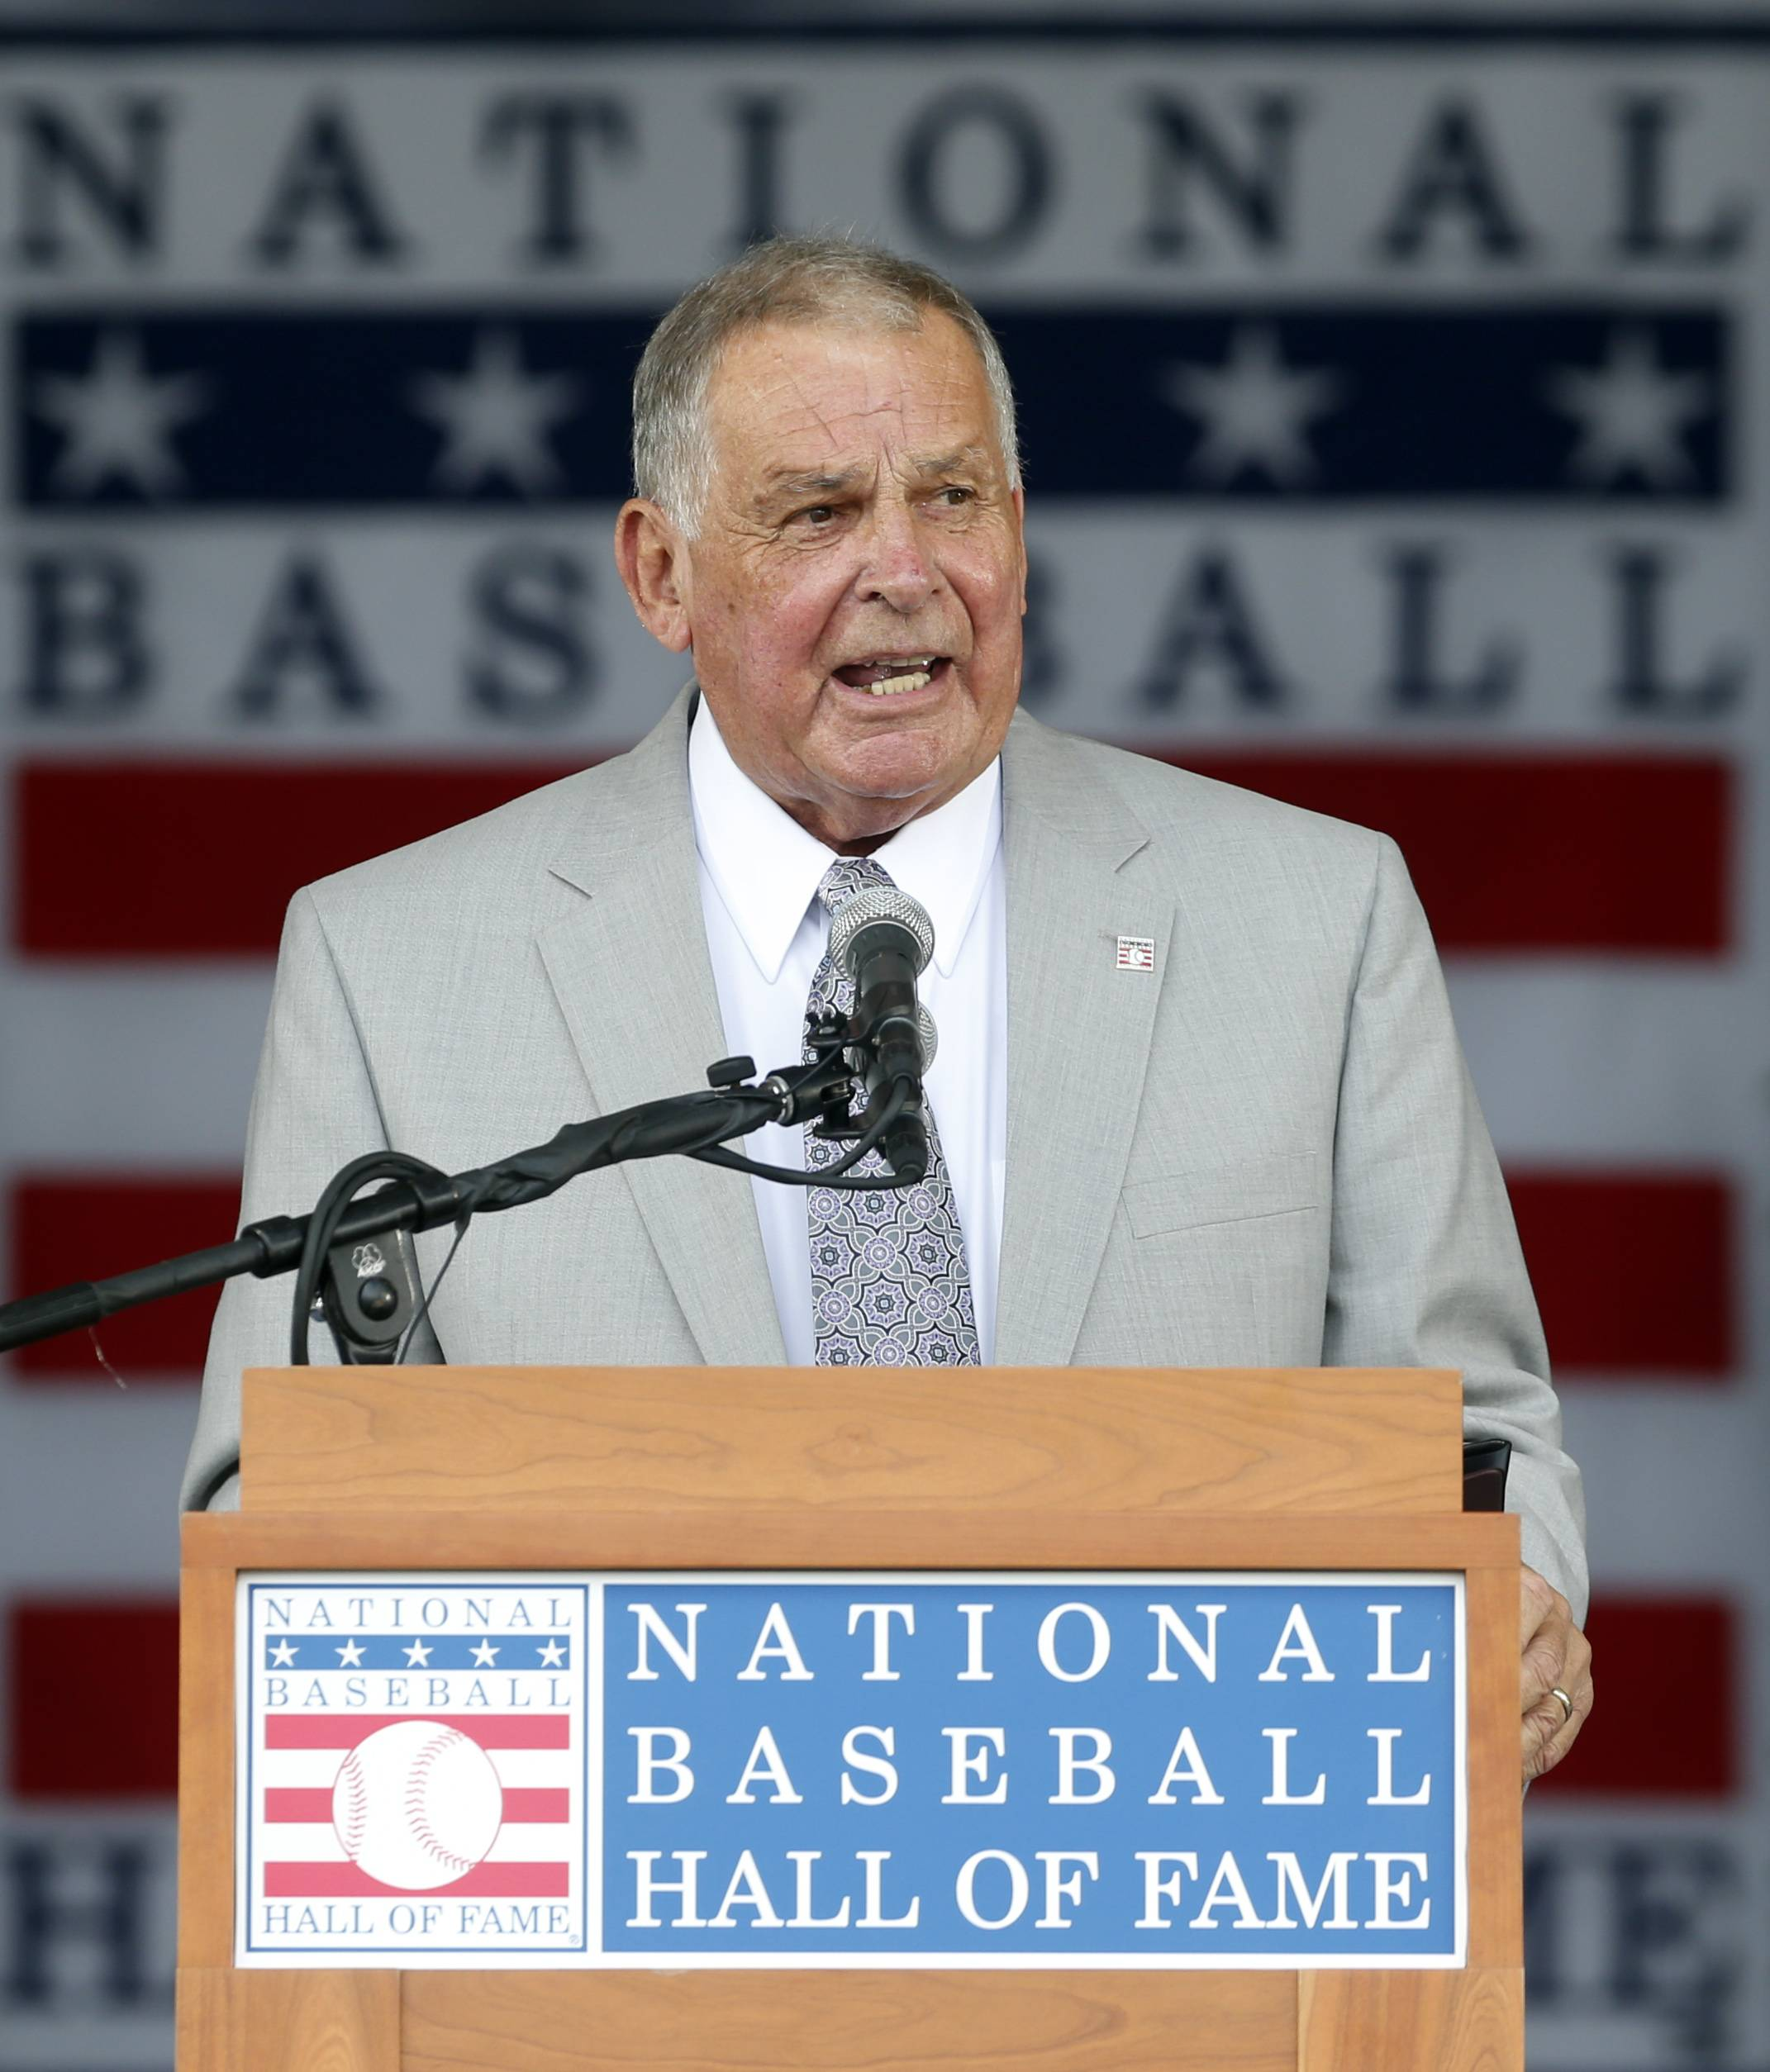 National Baseball Hall of Fame inductee Bobby Cox speaks during an induction ceremony at the Clark Sports Center on Sunday, July 27, 2014, in Cooperstown, N.Y.